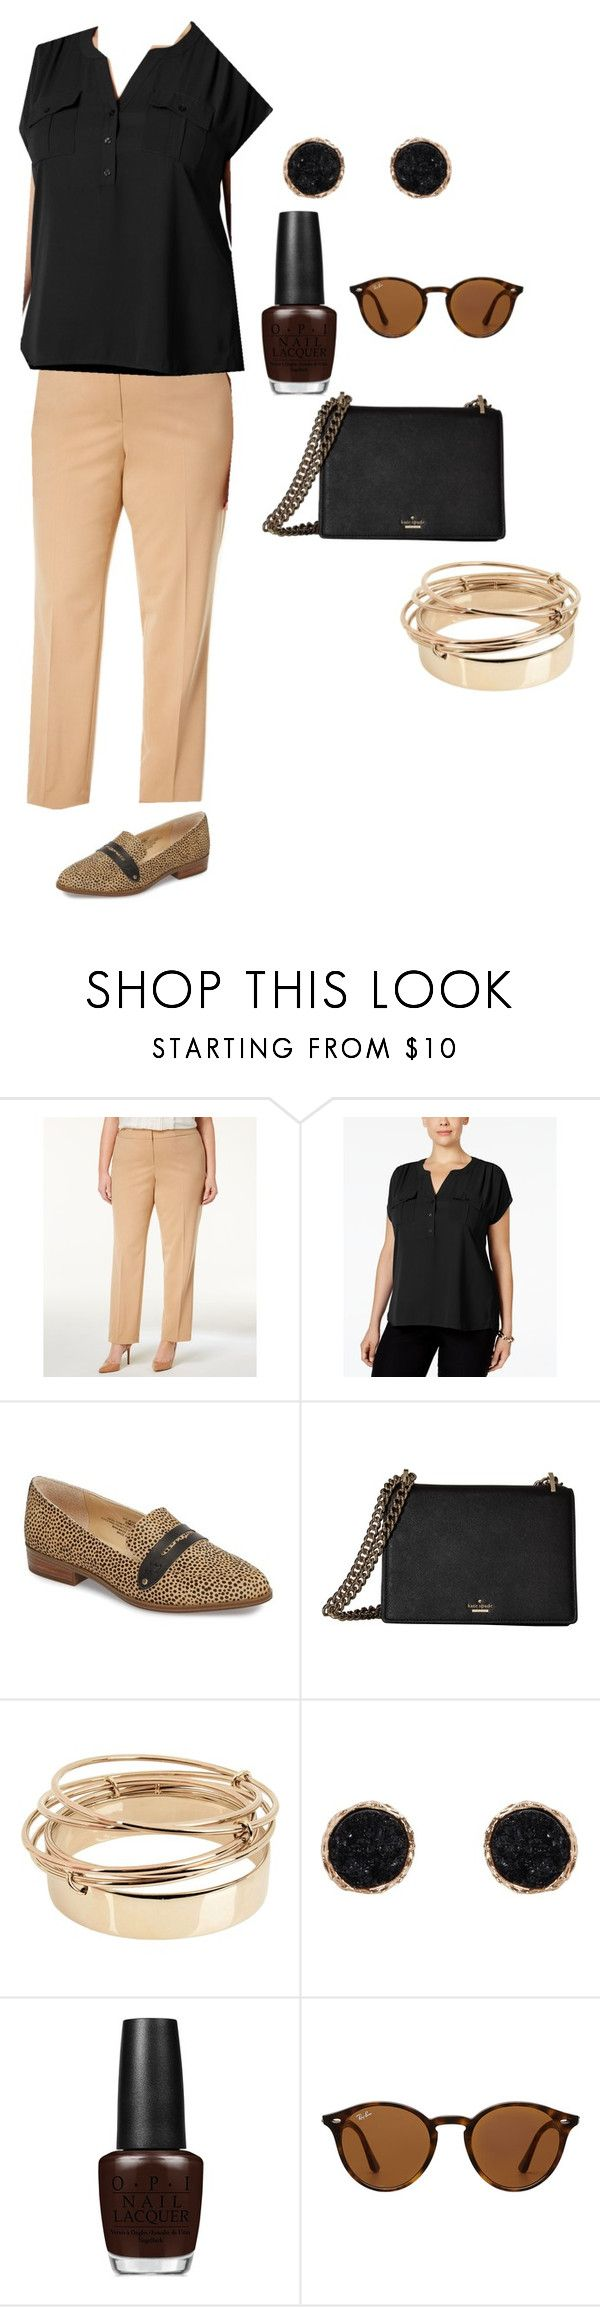 """Neutral Office"" by ambernaubry on Polyvore featuring Nine West, INC International Concepts, Sole Society, Kate Spade, Valentino, Humble Chic, OPI, Ray-Ban and plus size clothing"